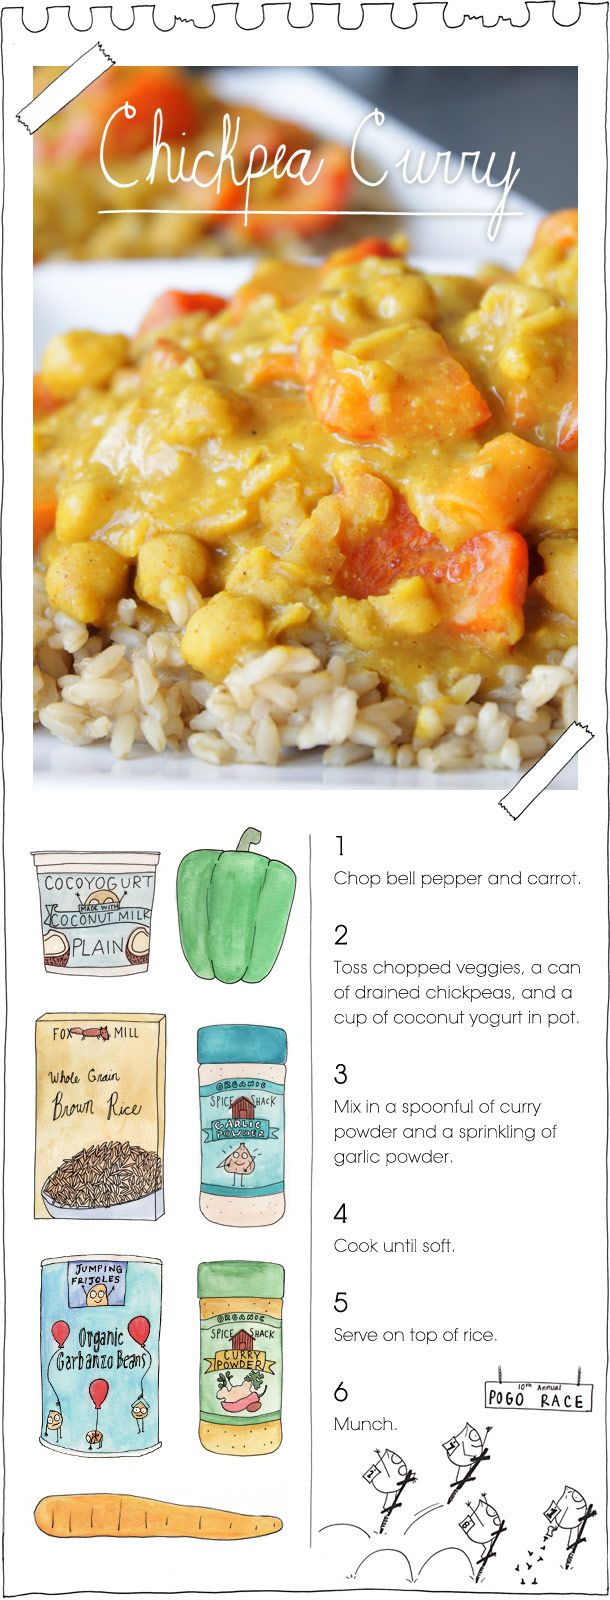 Chickpea Curry: Vegans, Vegan Recipes, Chickpeas, Chickpea Curry, Curries, Vegan Food